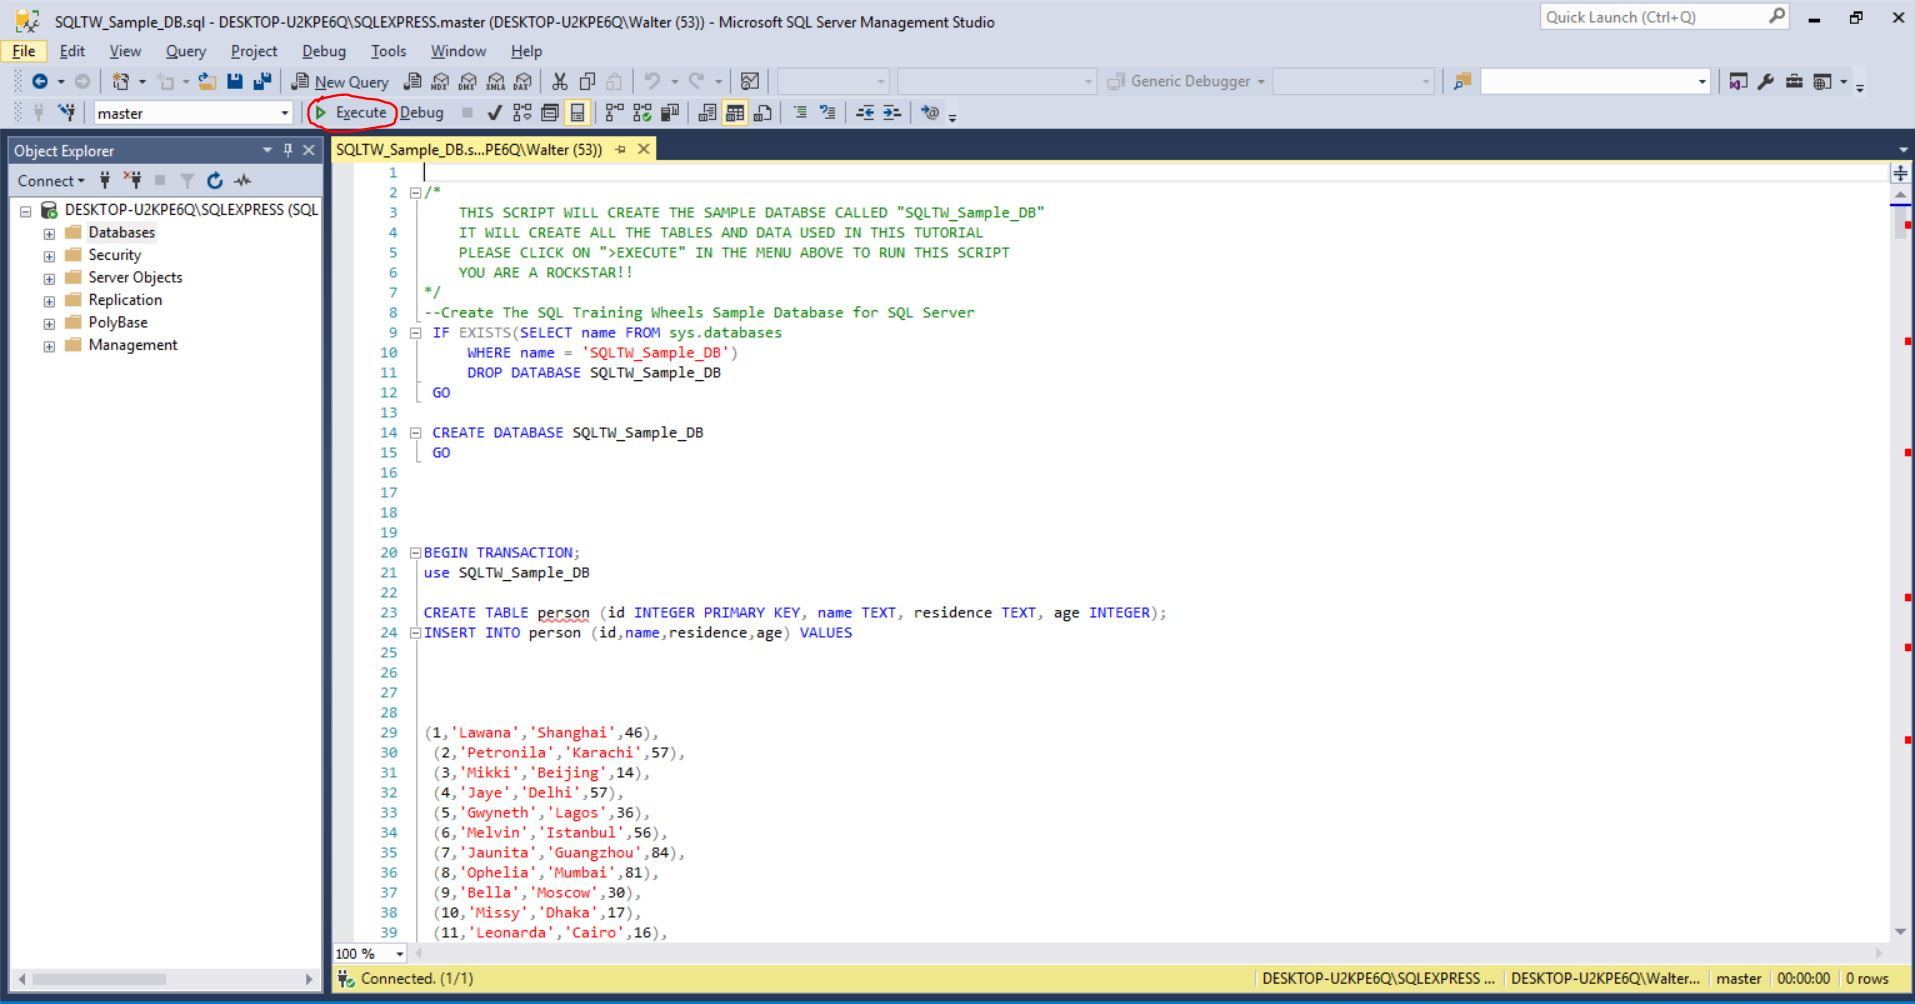 Click on  Execute  to run the script and create the SQLTW_Sample_DB.